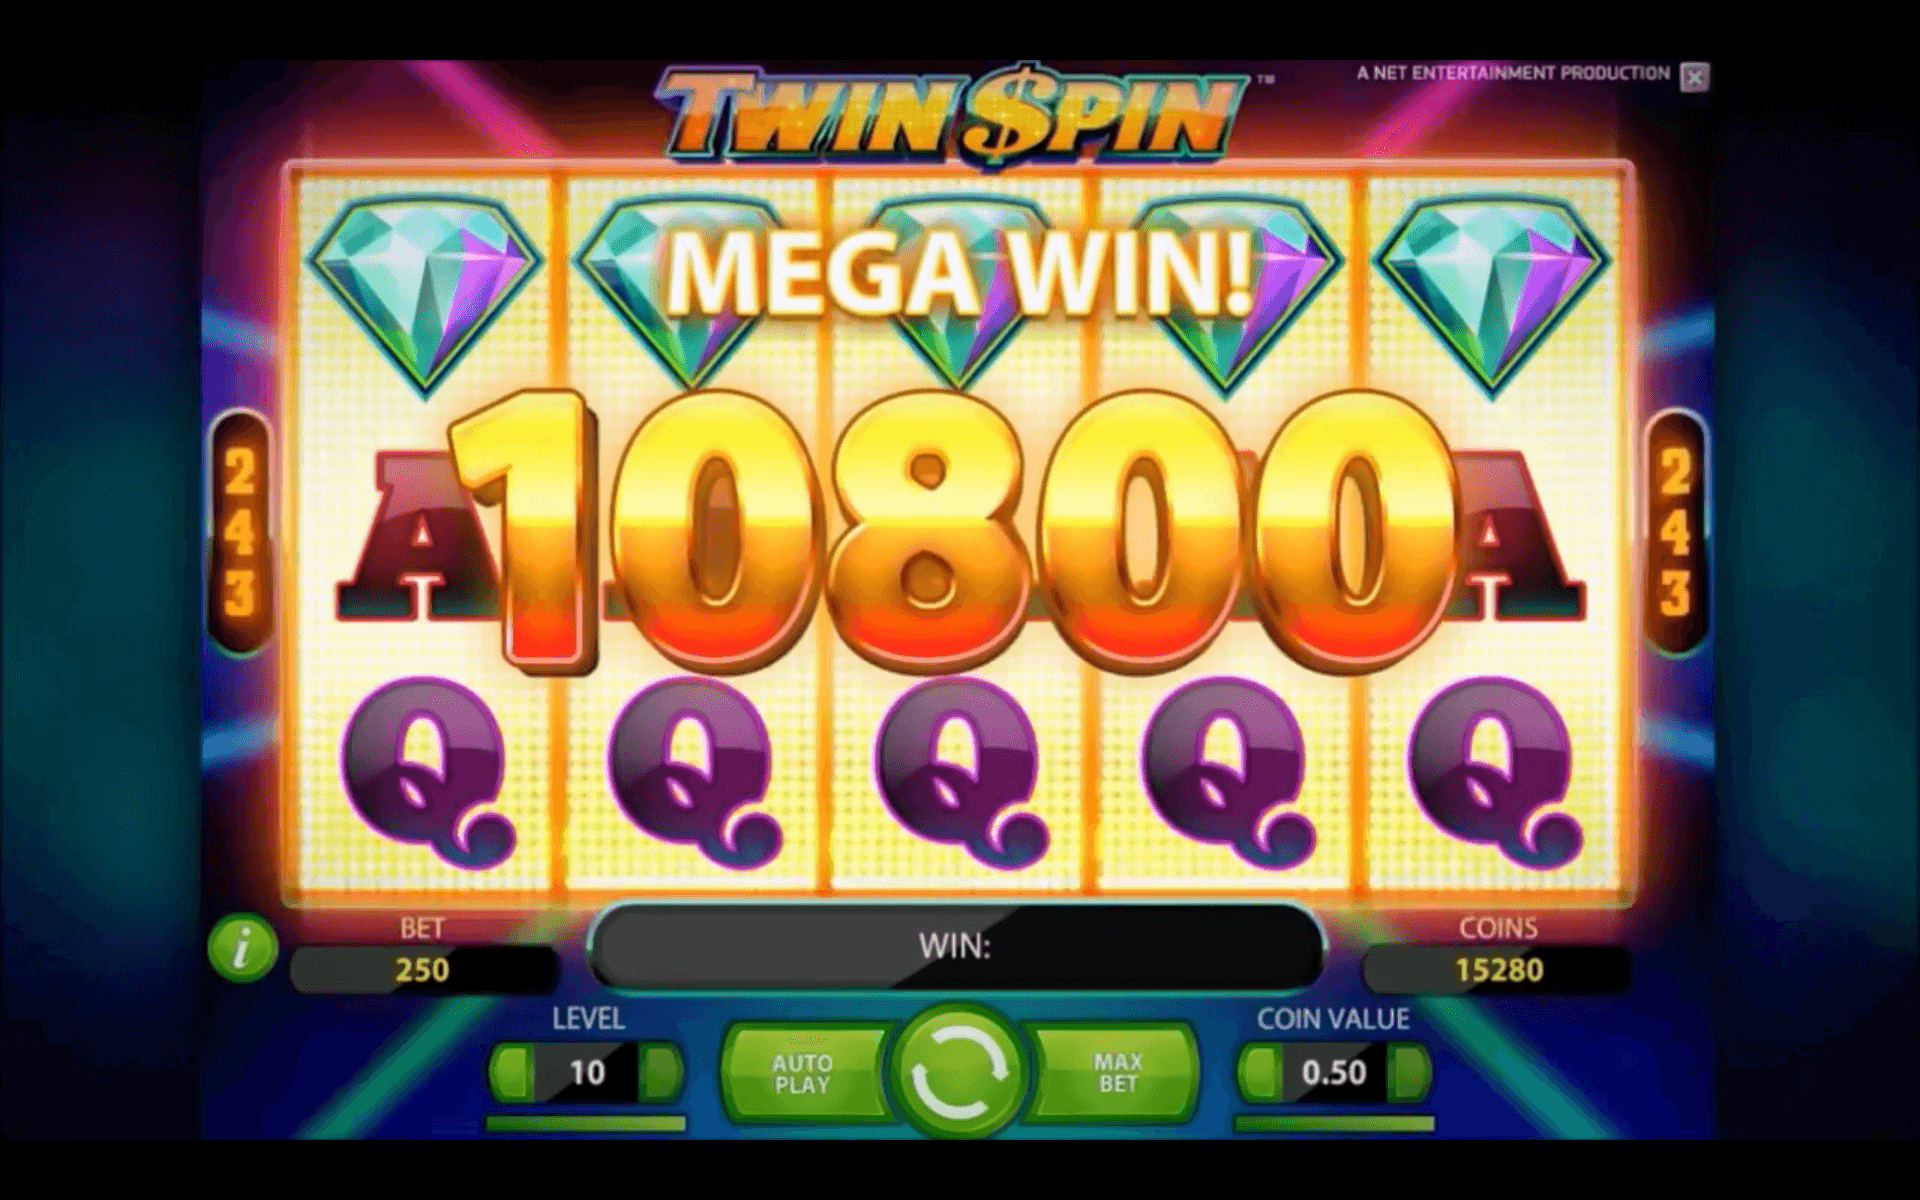 Twin Spins Slots